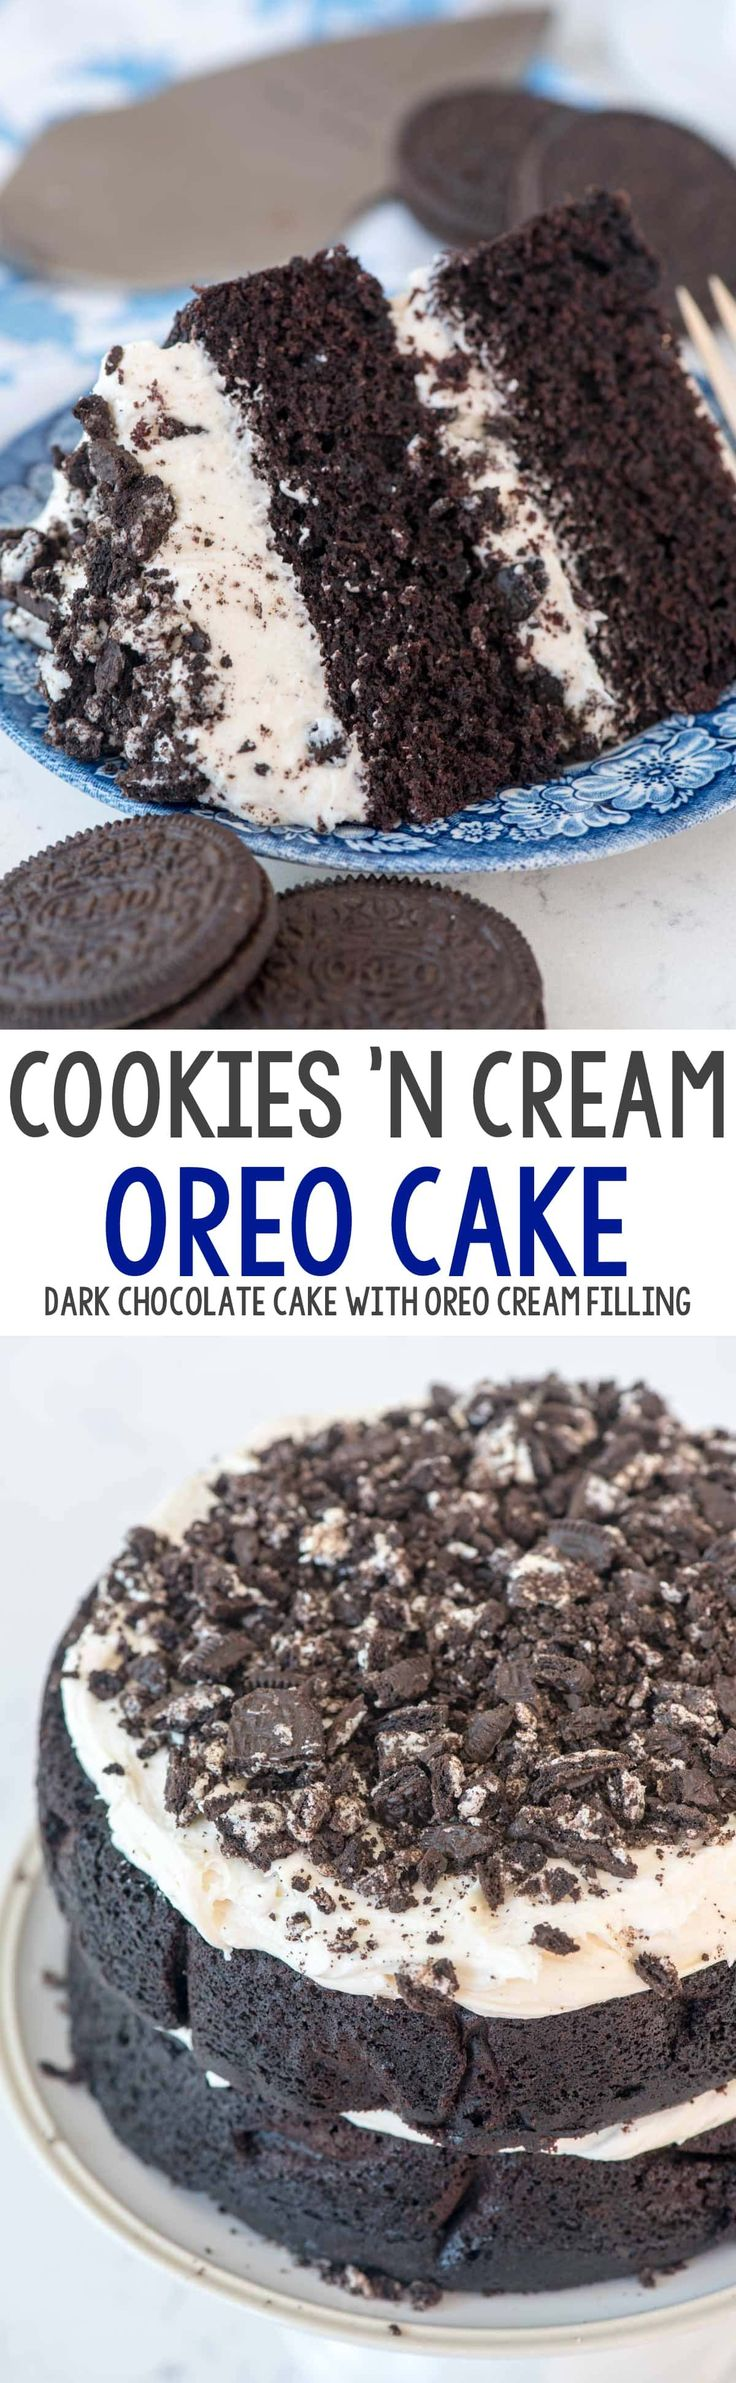 Extreme Cookies 'n Cream Cake - this cake tastes like an Oreo cookie! Dark chocolate cake layers sandwiched with a marshmallow buttercream frosting and lots of crushed Oreo cookies.  #recipes #recipesfordinner #recipeseasy #recipeshealthy #recipeswithgroundbeef #recipesfordinnereasy